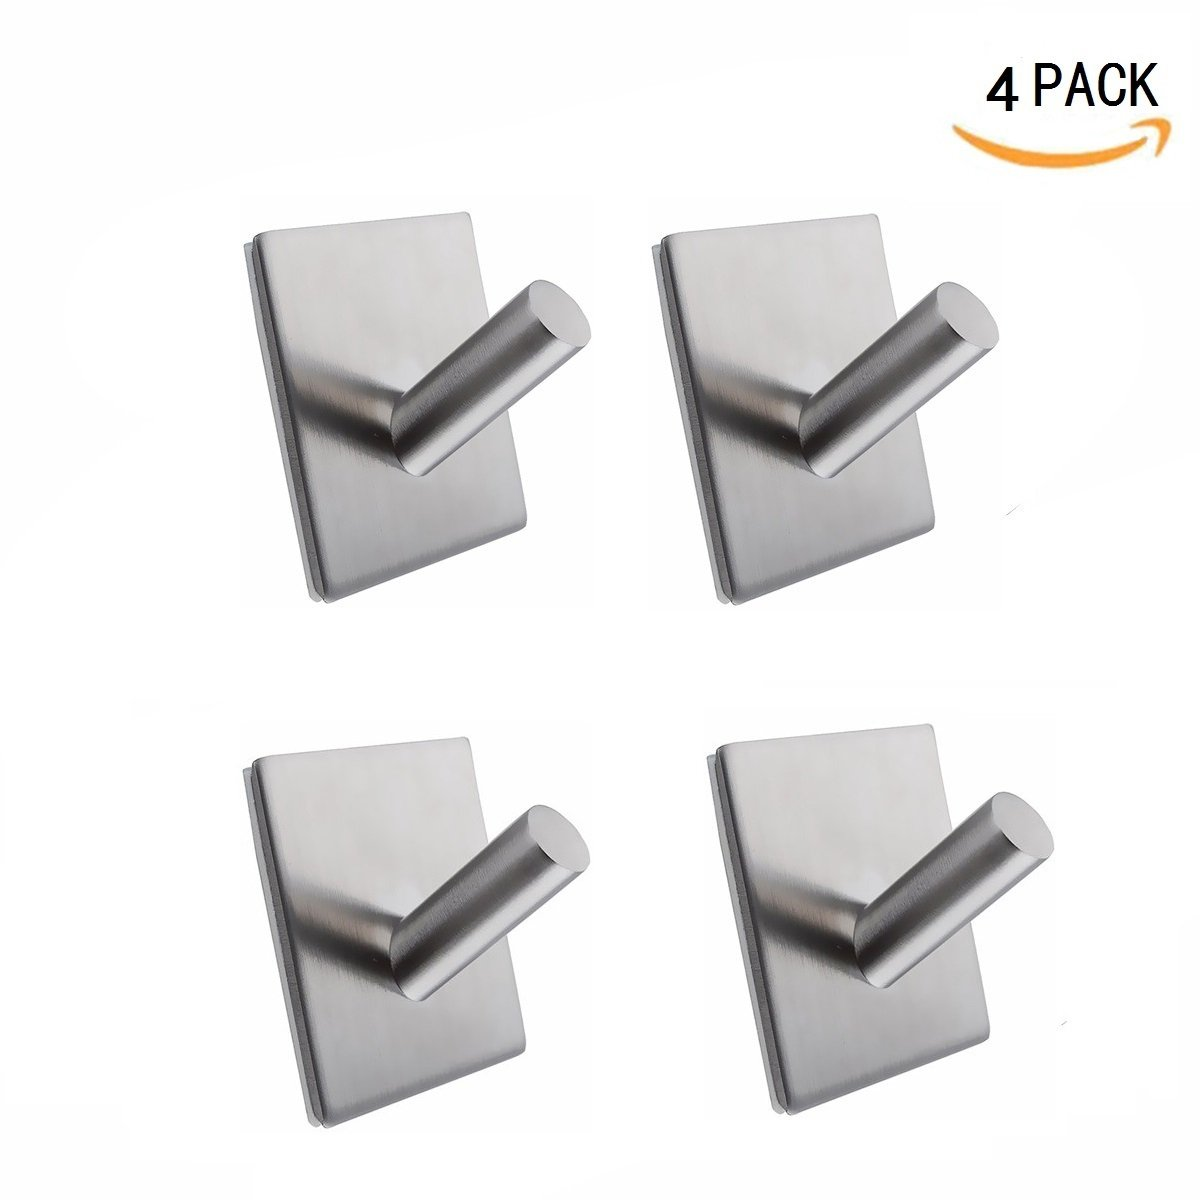 JIAEN Hook 304 Stainless Steel Self-adhesion Hooks for Storage in Bathroom Kitchen Toilet Hotel Restaurant to Hang Towel Coat Cap Hat Kitchenware,Brushed Rustproof,3M Adhensive 4 Pack (Type A-4Pack)